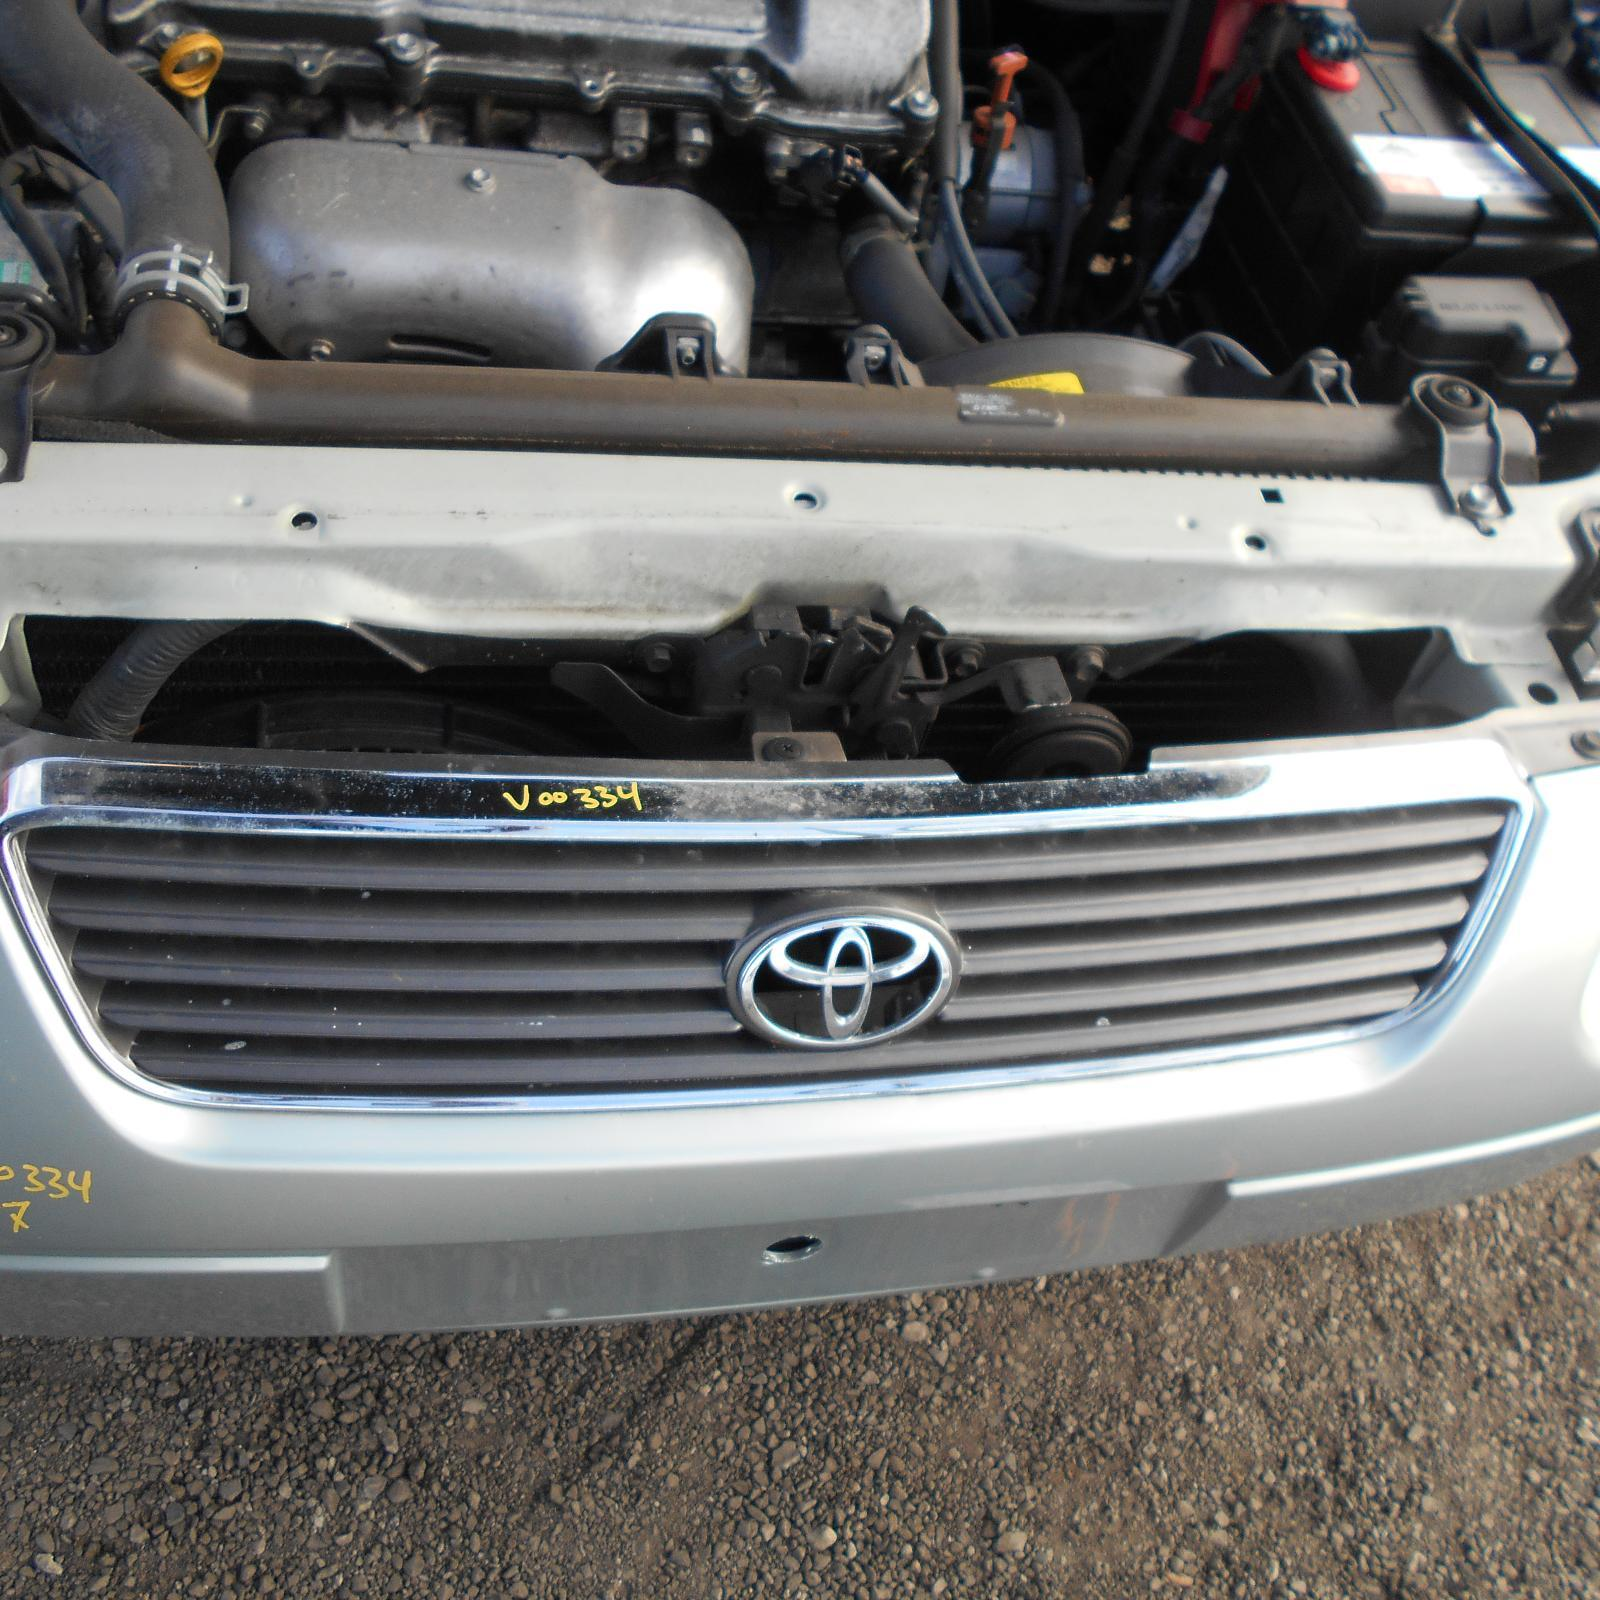 TOYOTA CAMRY, Grille, RADIATOR GRILLE, SK20, GREY/CHROME, VIENTA, 08/97-09/00